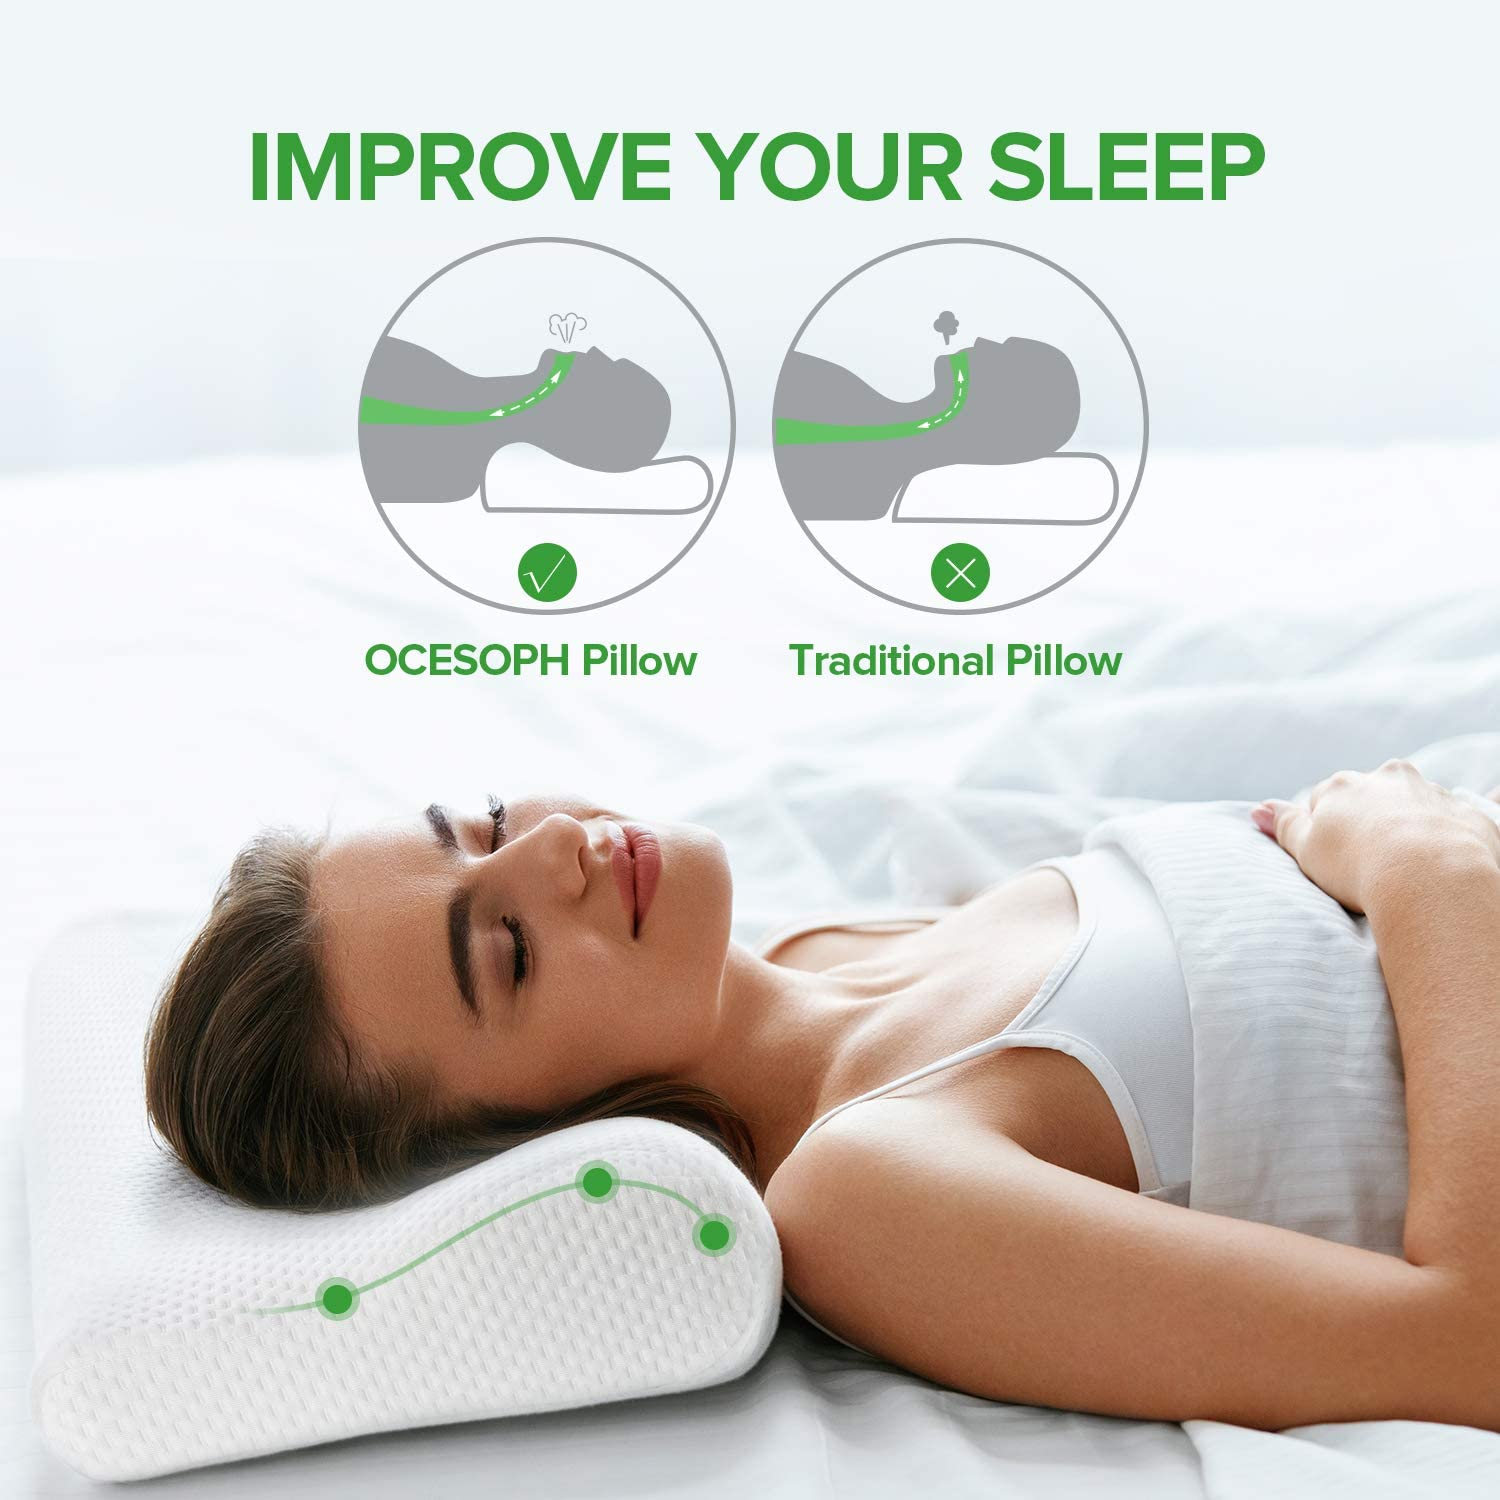 Orthopedic Memory Foam Pillows for Neck Pain Relief, Bamboo Ergonomic Bed Pillow